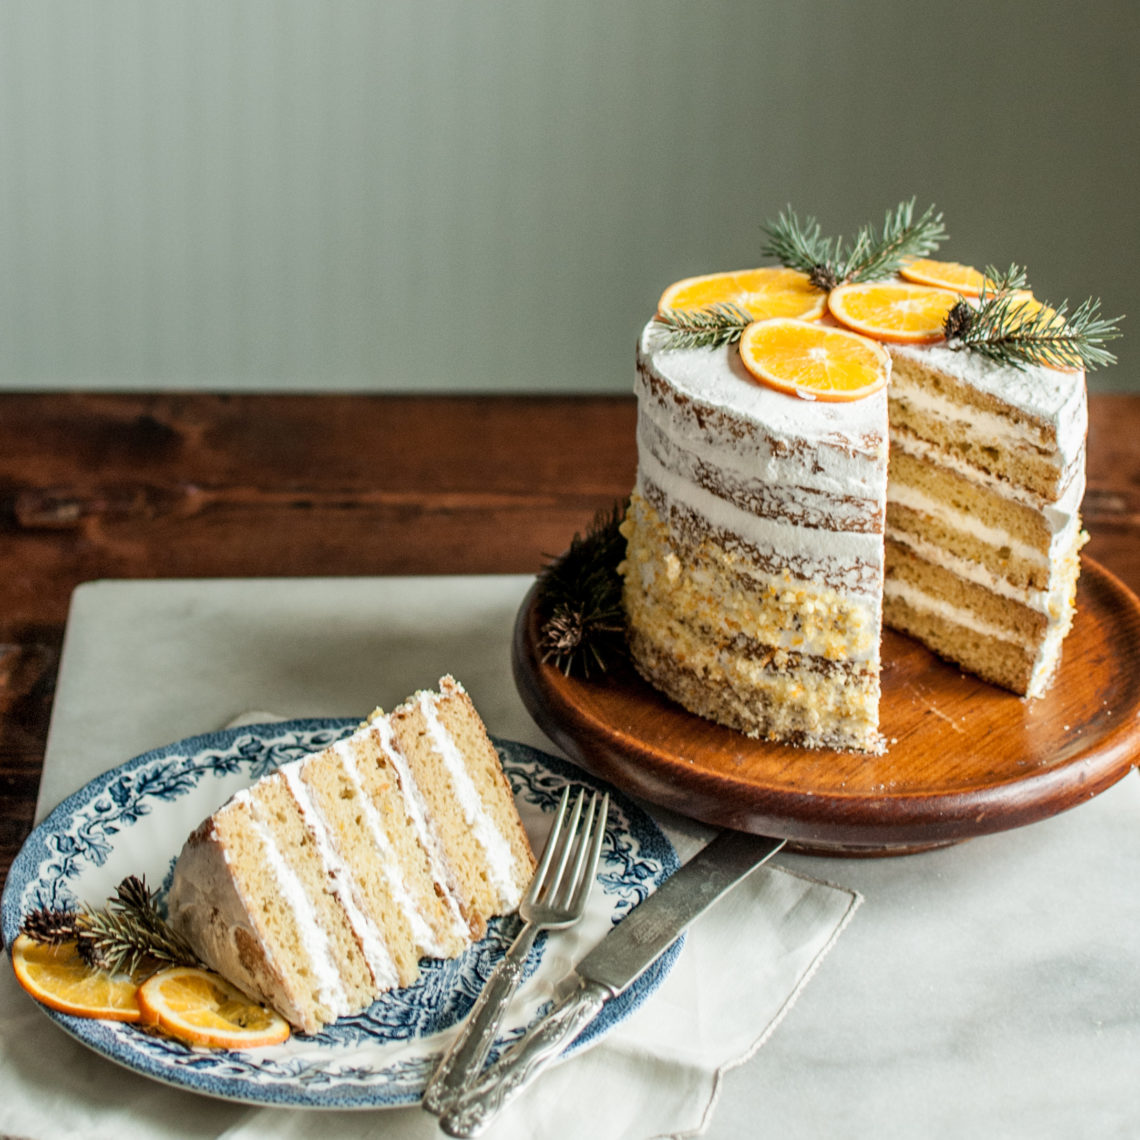 Awesome recipe for a buttery, not-to-sweet orange layer cake that is loaded with flavor. I paired it with a simple whipped cream for icing, and orange marmalade for filling. A true delight and perfect for a wedding cake to, so elegant!